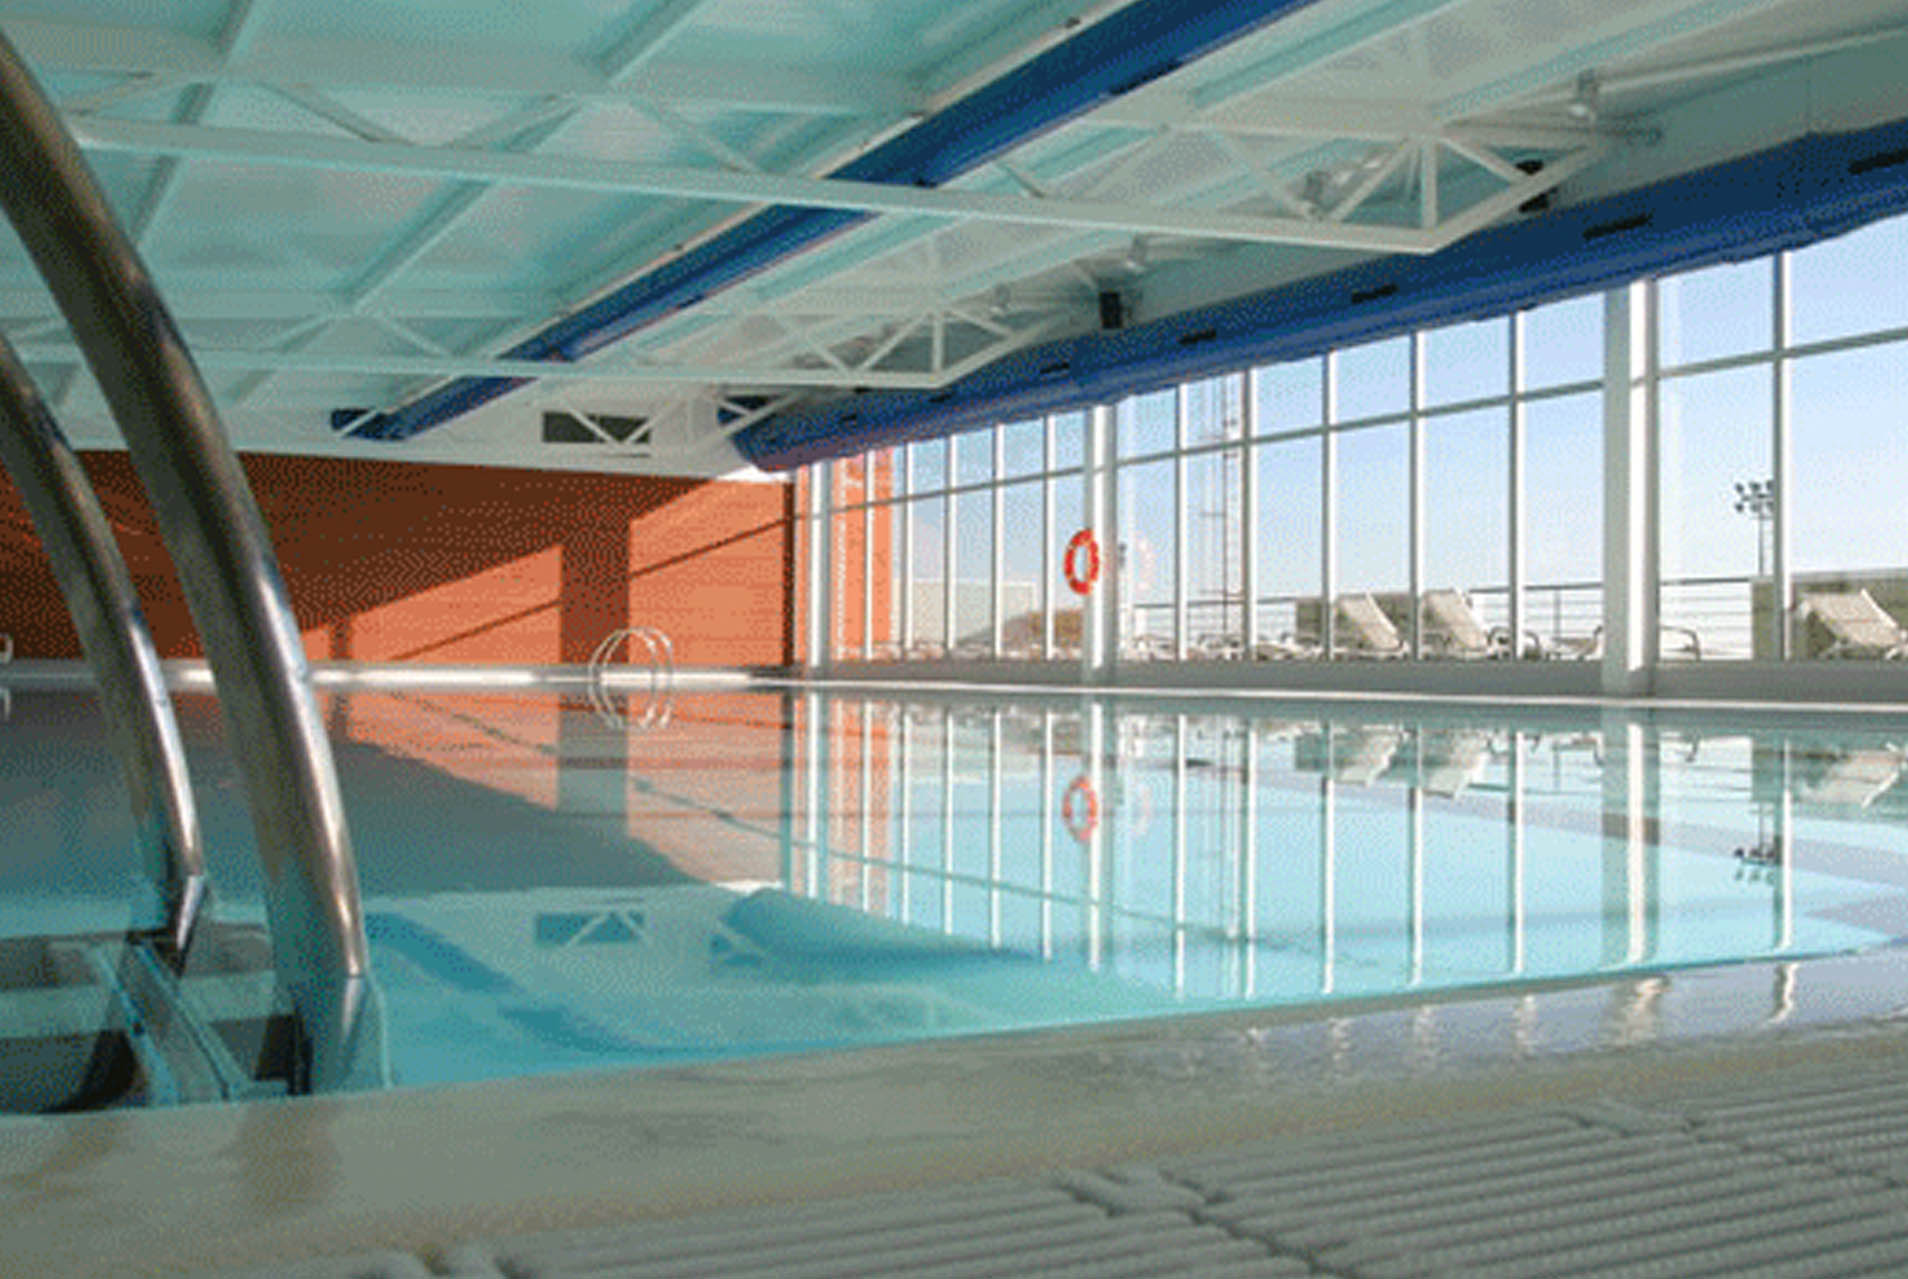 Club Egara_Piscina interior